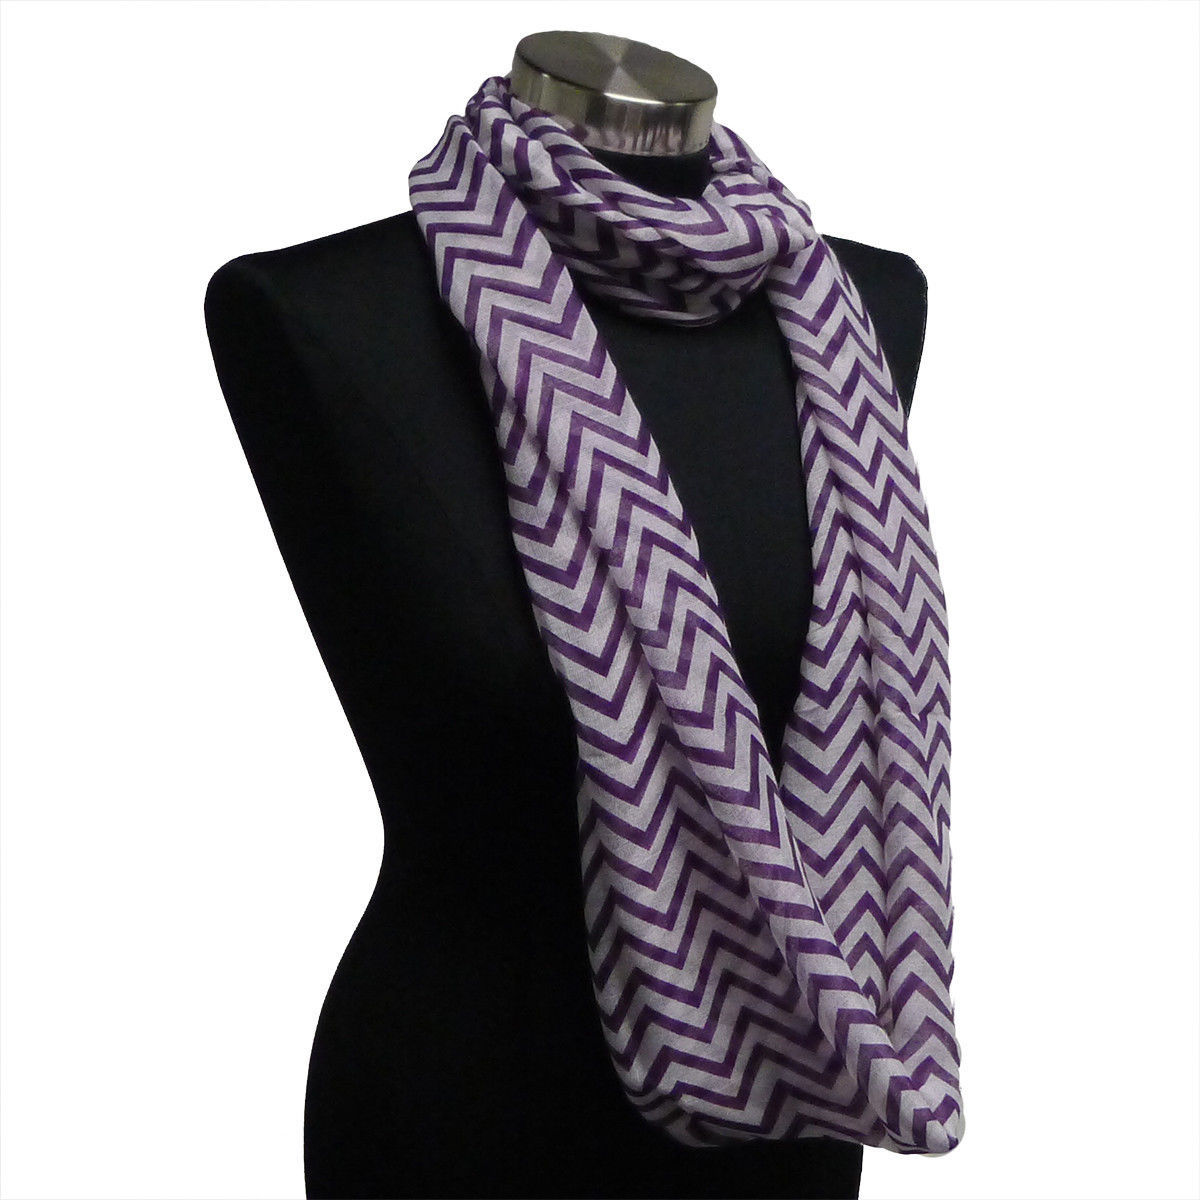 Primary image for Chevron Sheer Infinity Scarf Purple Contrasting Colors Soft Warm Gift US Seller